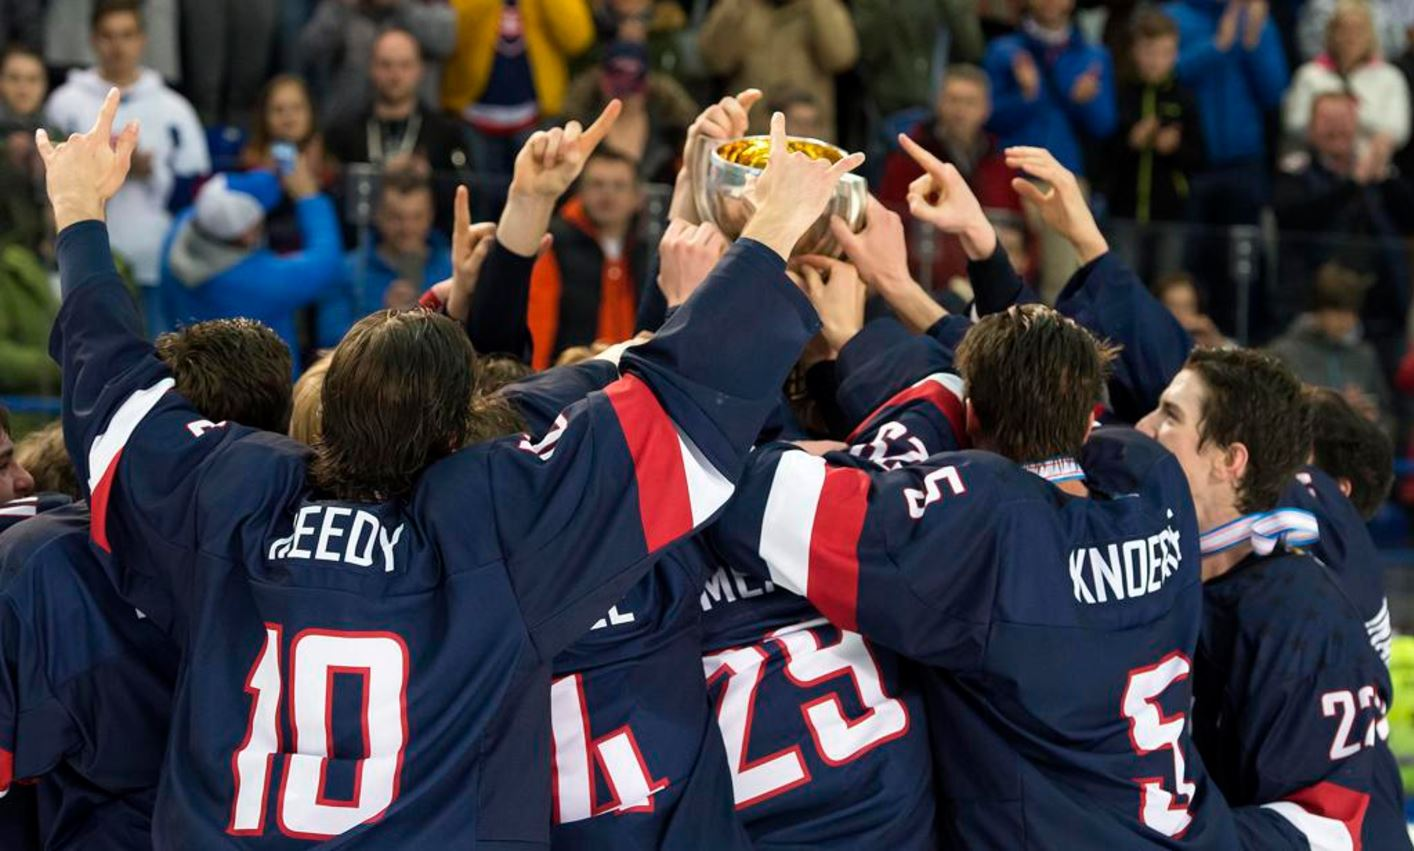 Athlete Development Leads to Gold Medal at the IIHF World Championship